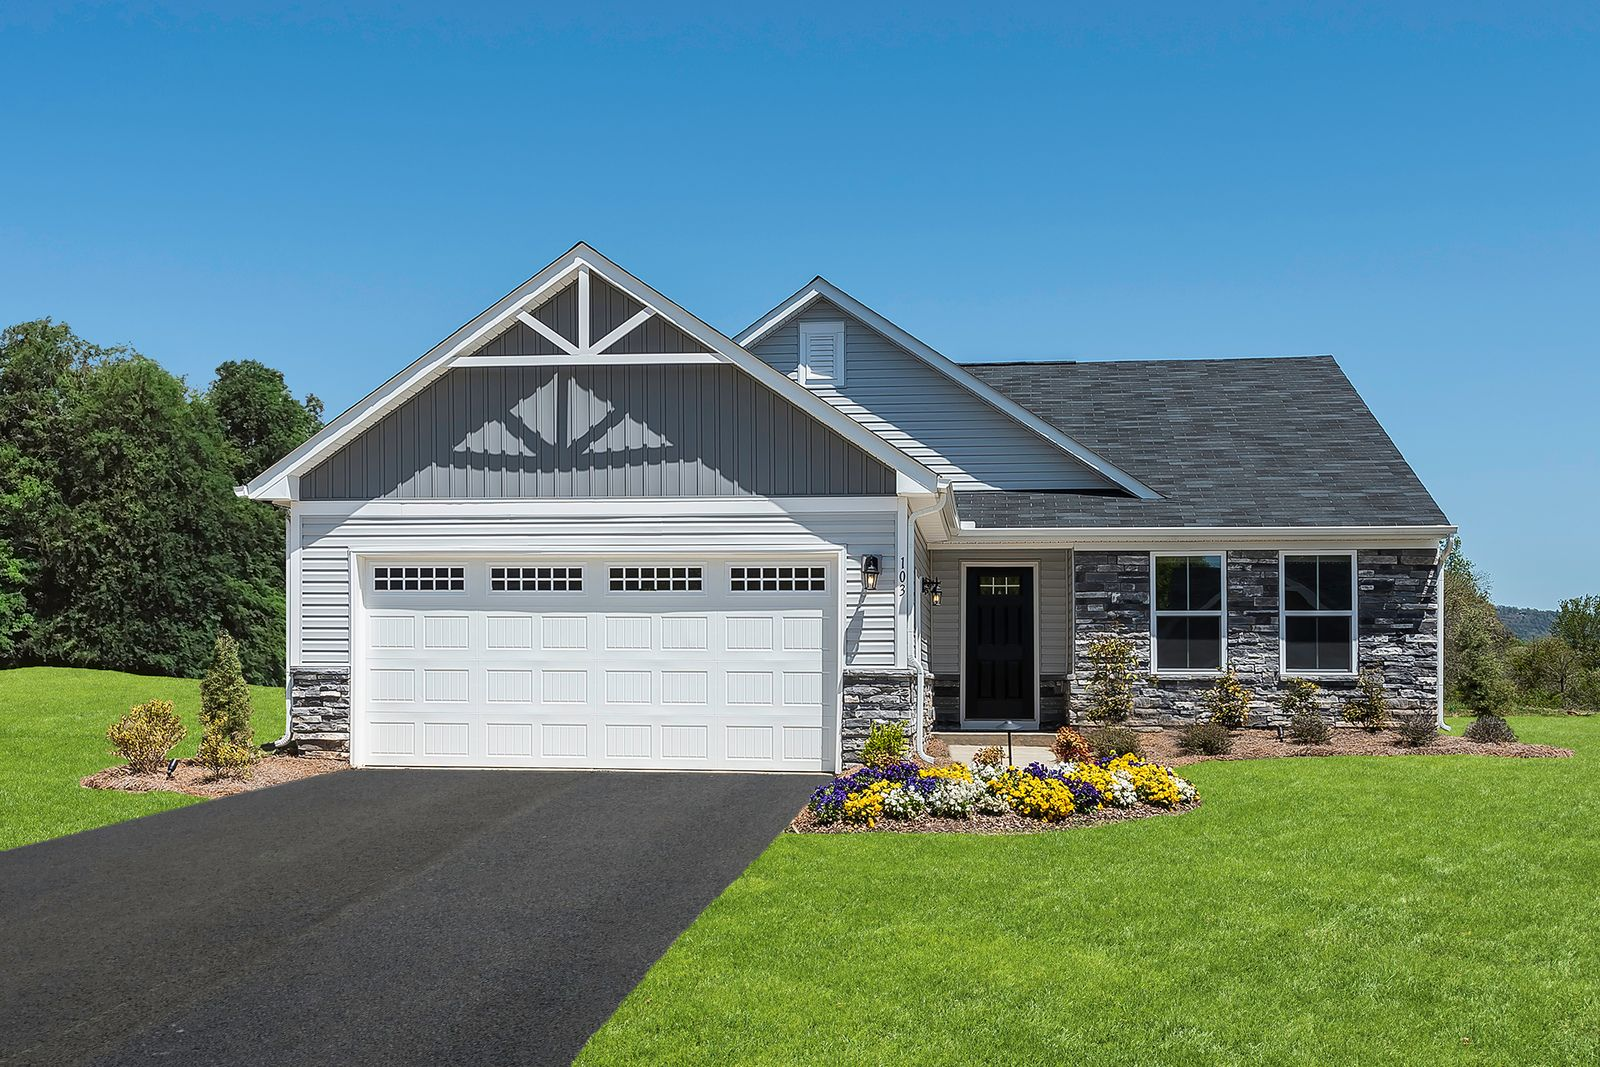 Easy One Level Living is Here!:The lowest price new ranch homes with included lawn maintenance in a great location! Only 10 minutes from Irwin, Murrysville and Greensburg! Schedule your visit today to learn more.